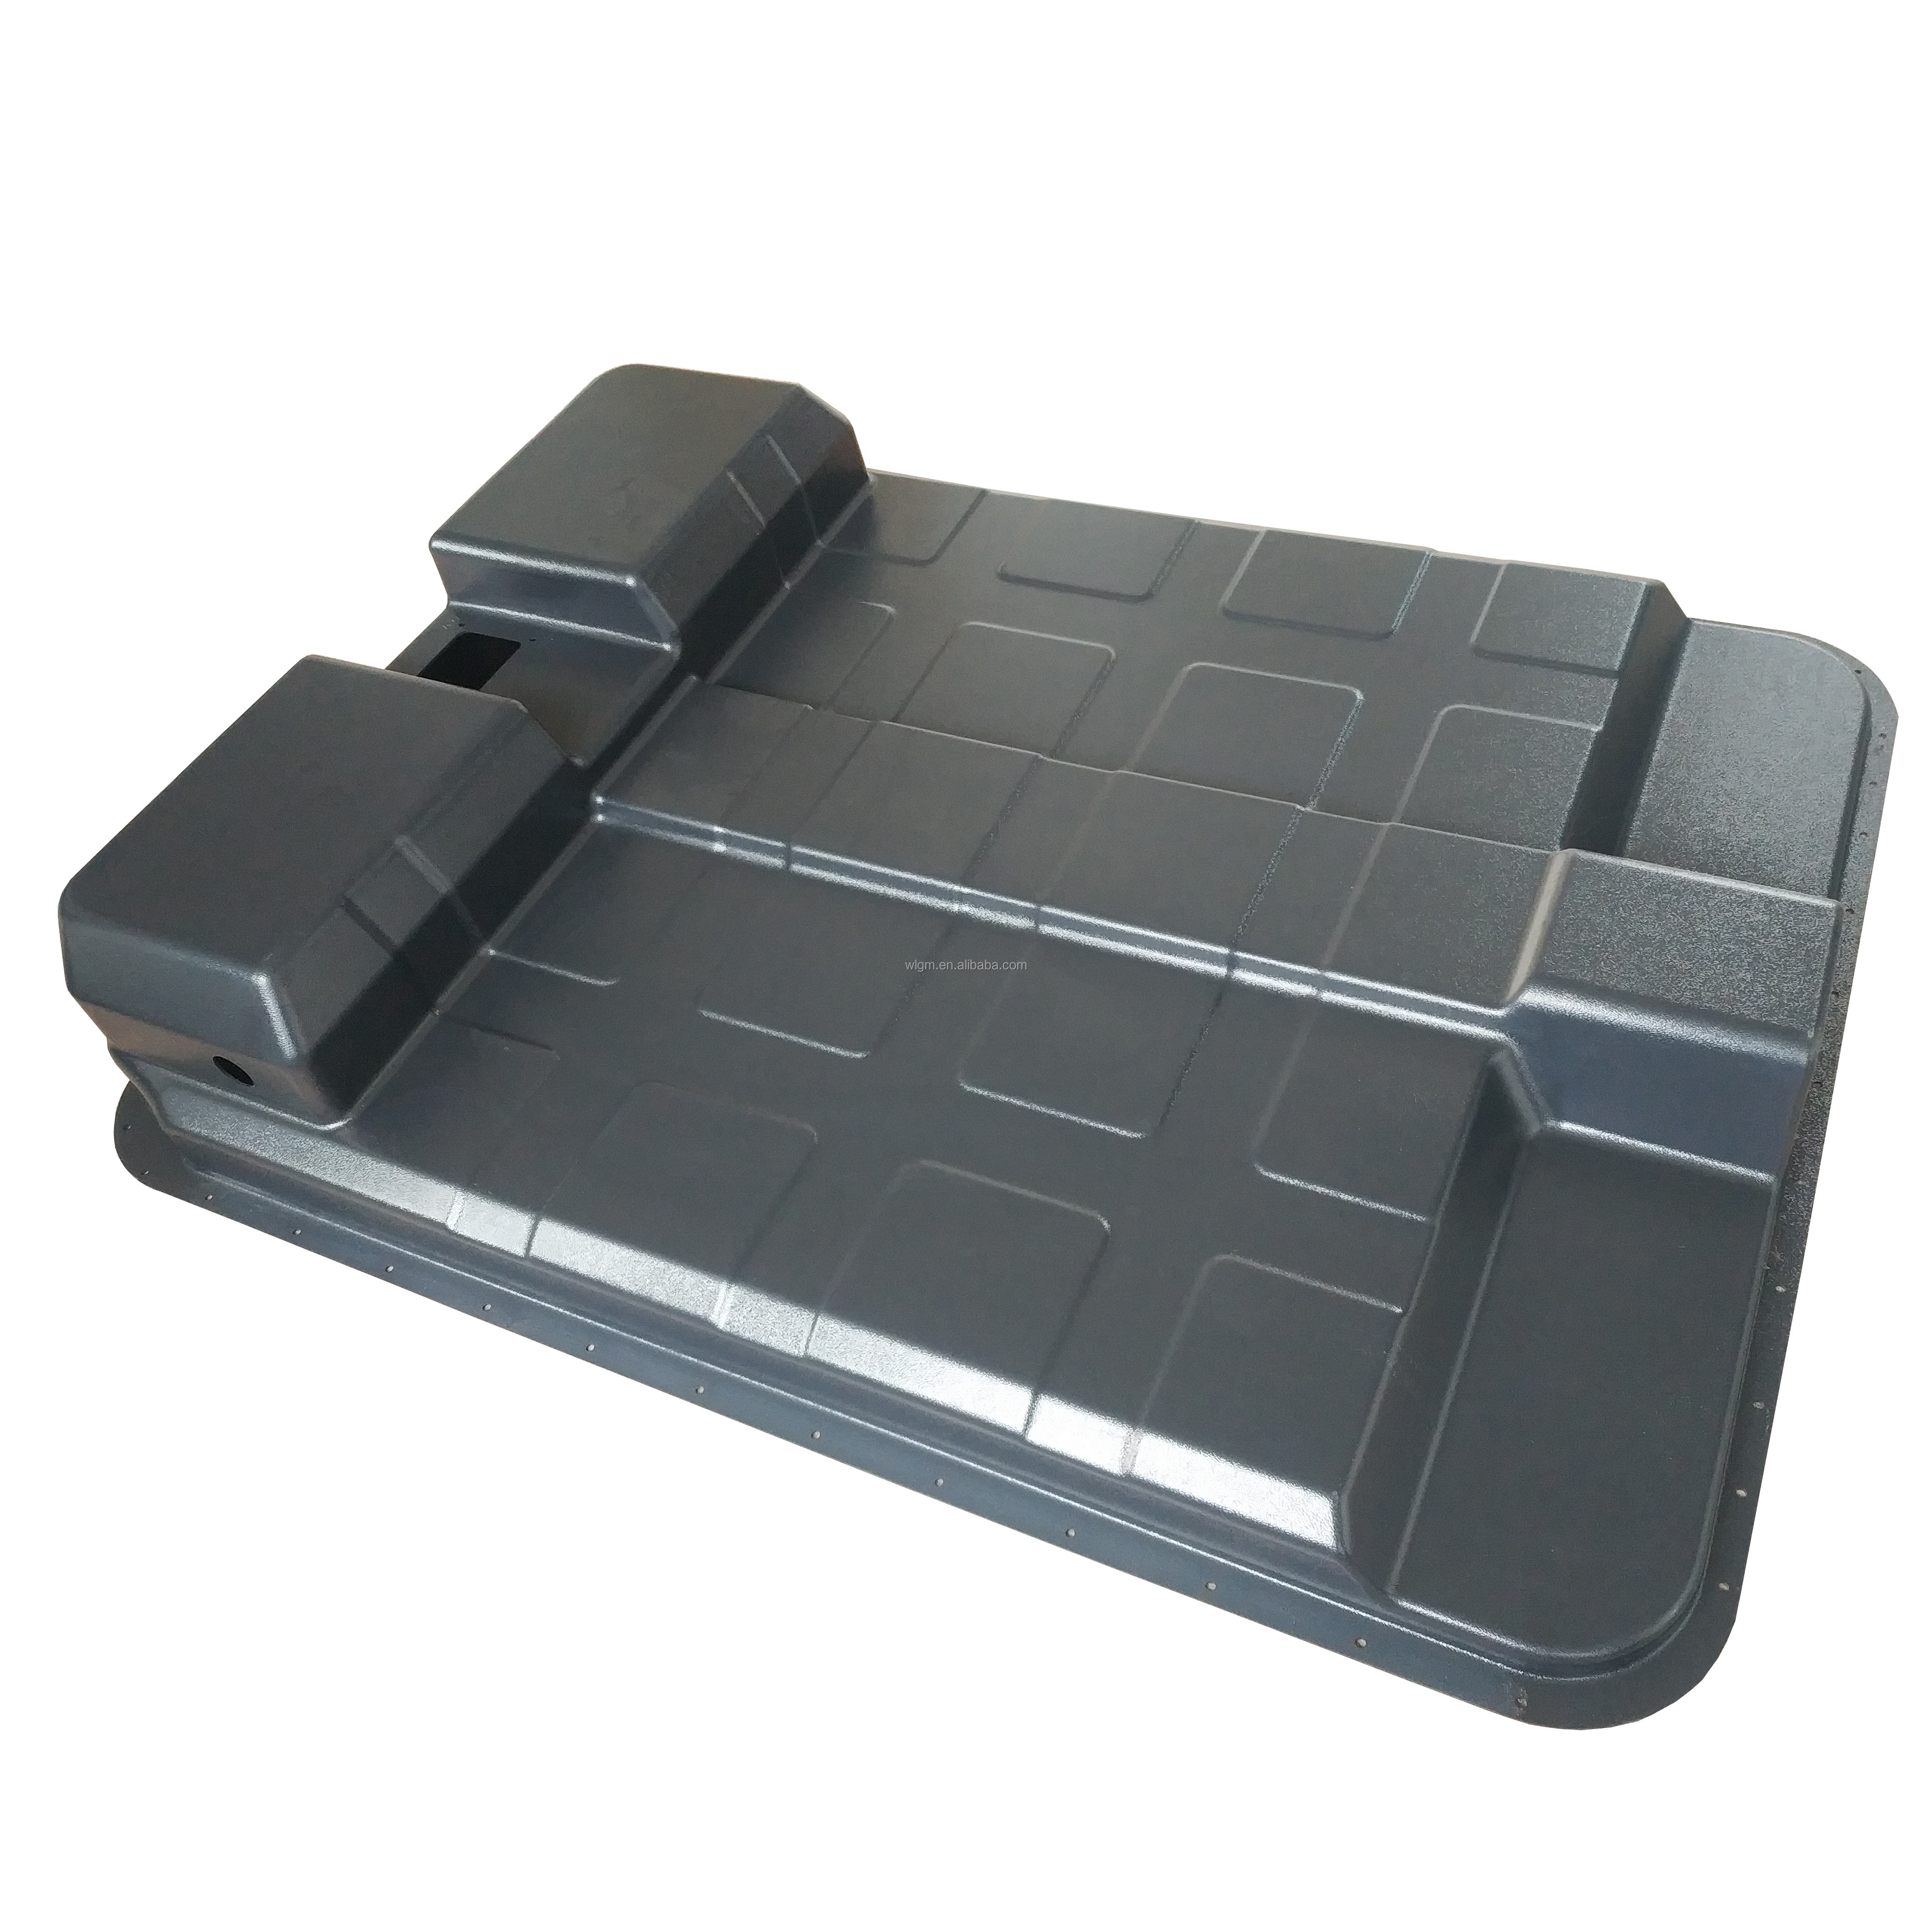 vacuumm forming large plastic tray electric bus bus parts accessories ningbo yuyao plastic products supplier